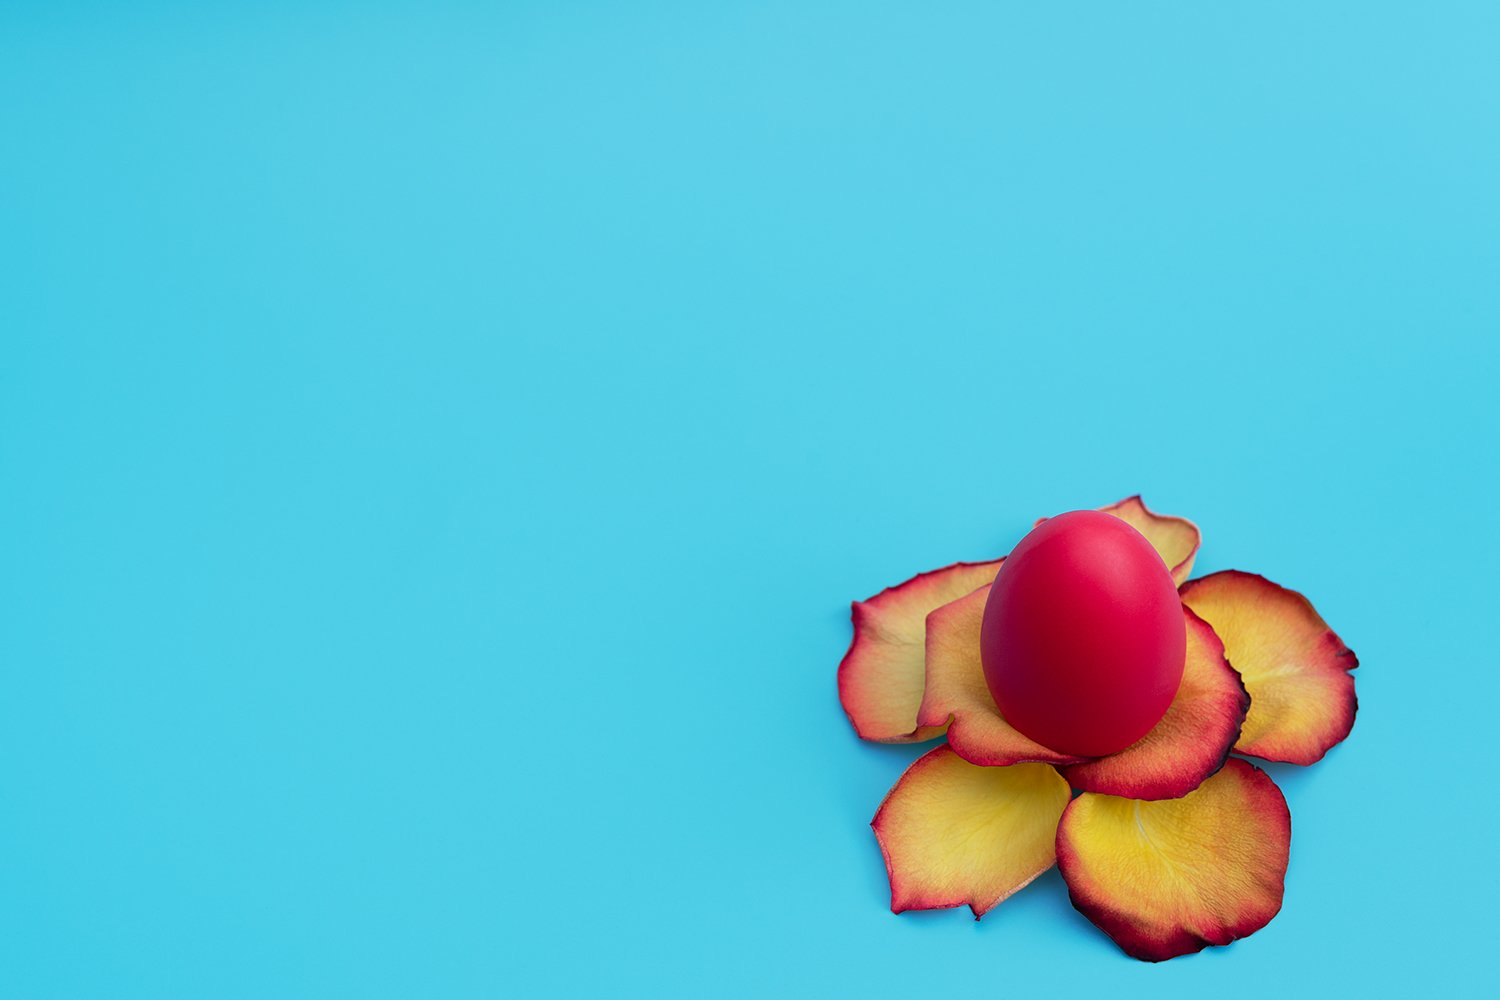 Red Easter egg stands in yellow flower made of rose petals example image 1